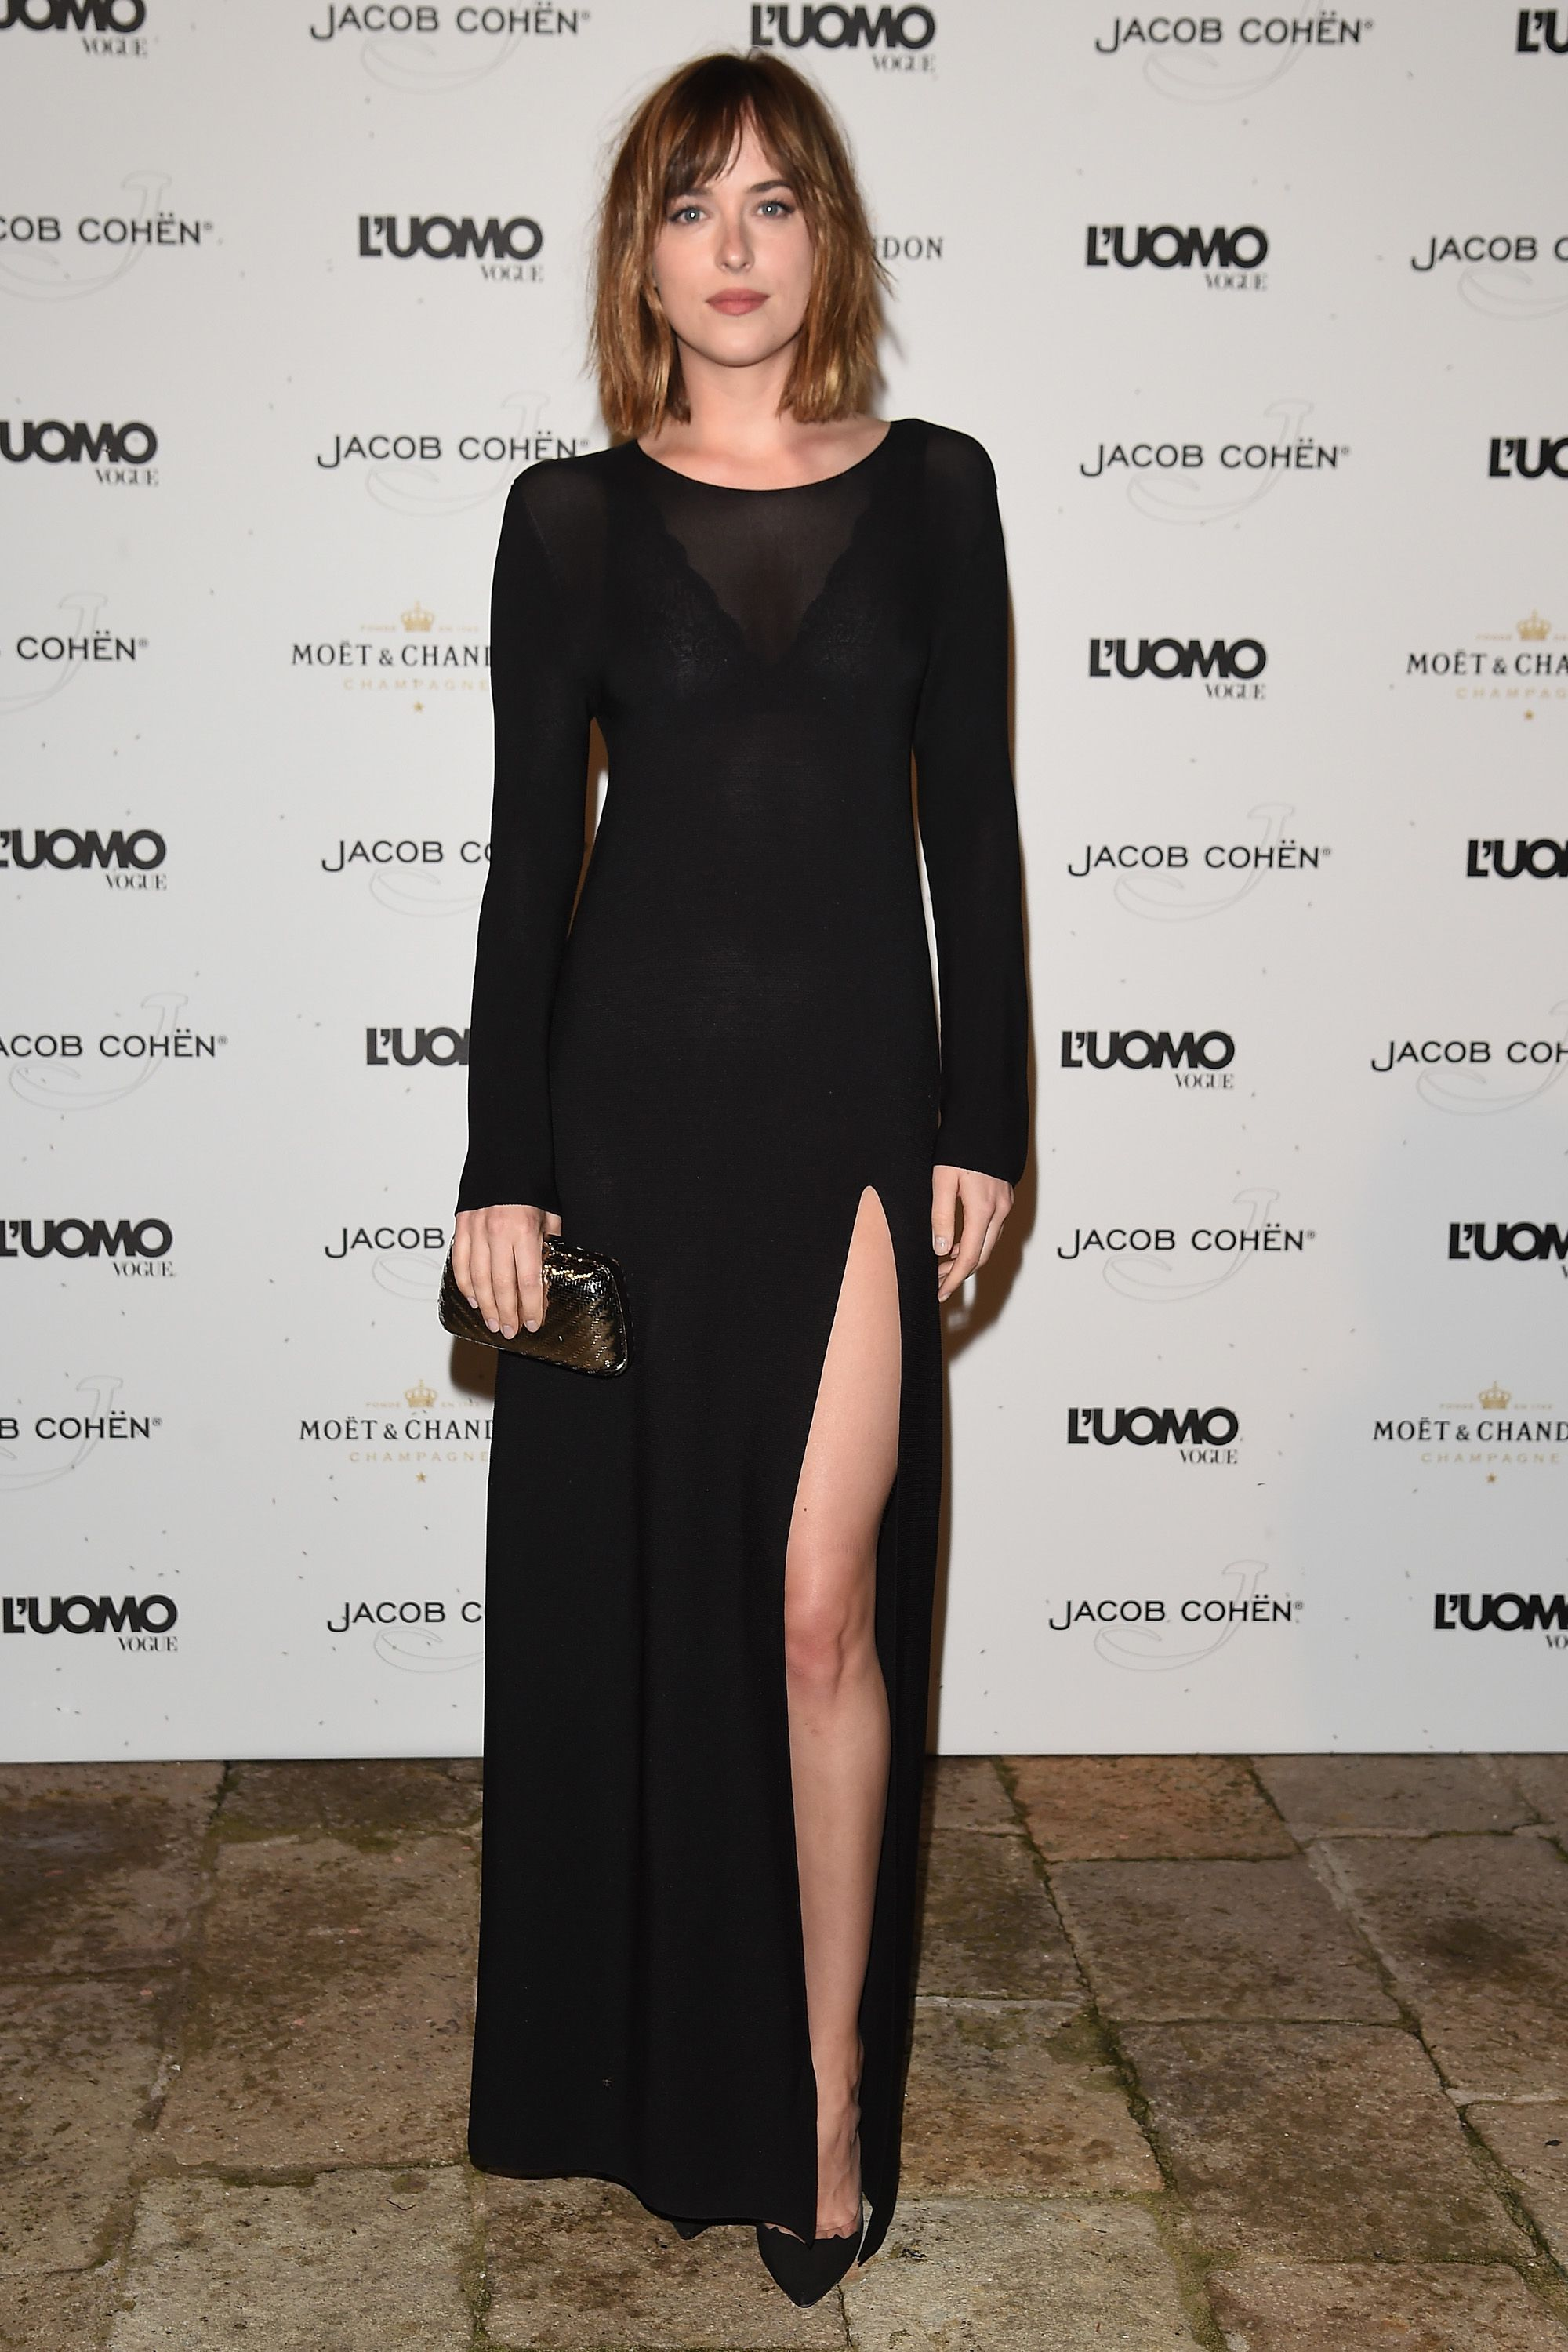 In a long-sleeved black dress with thigh-high slit - MarieClaire.com